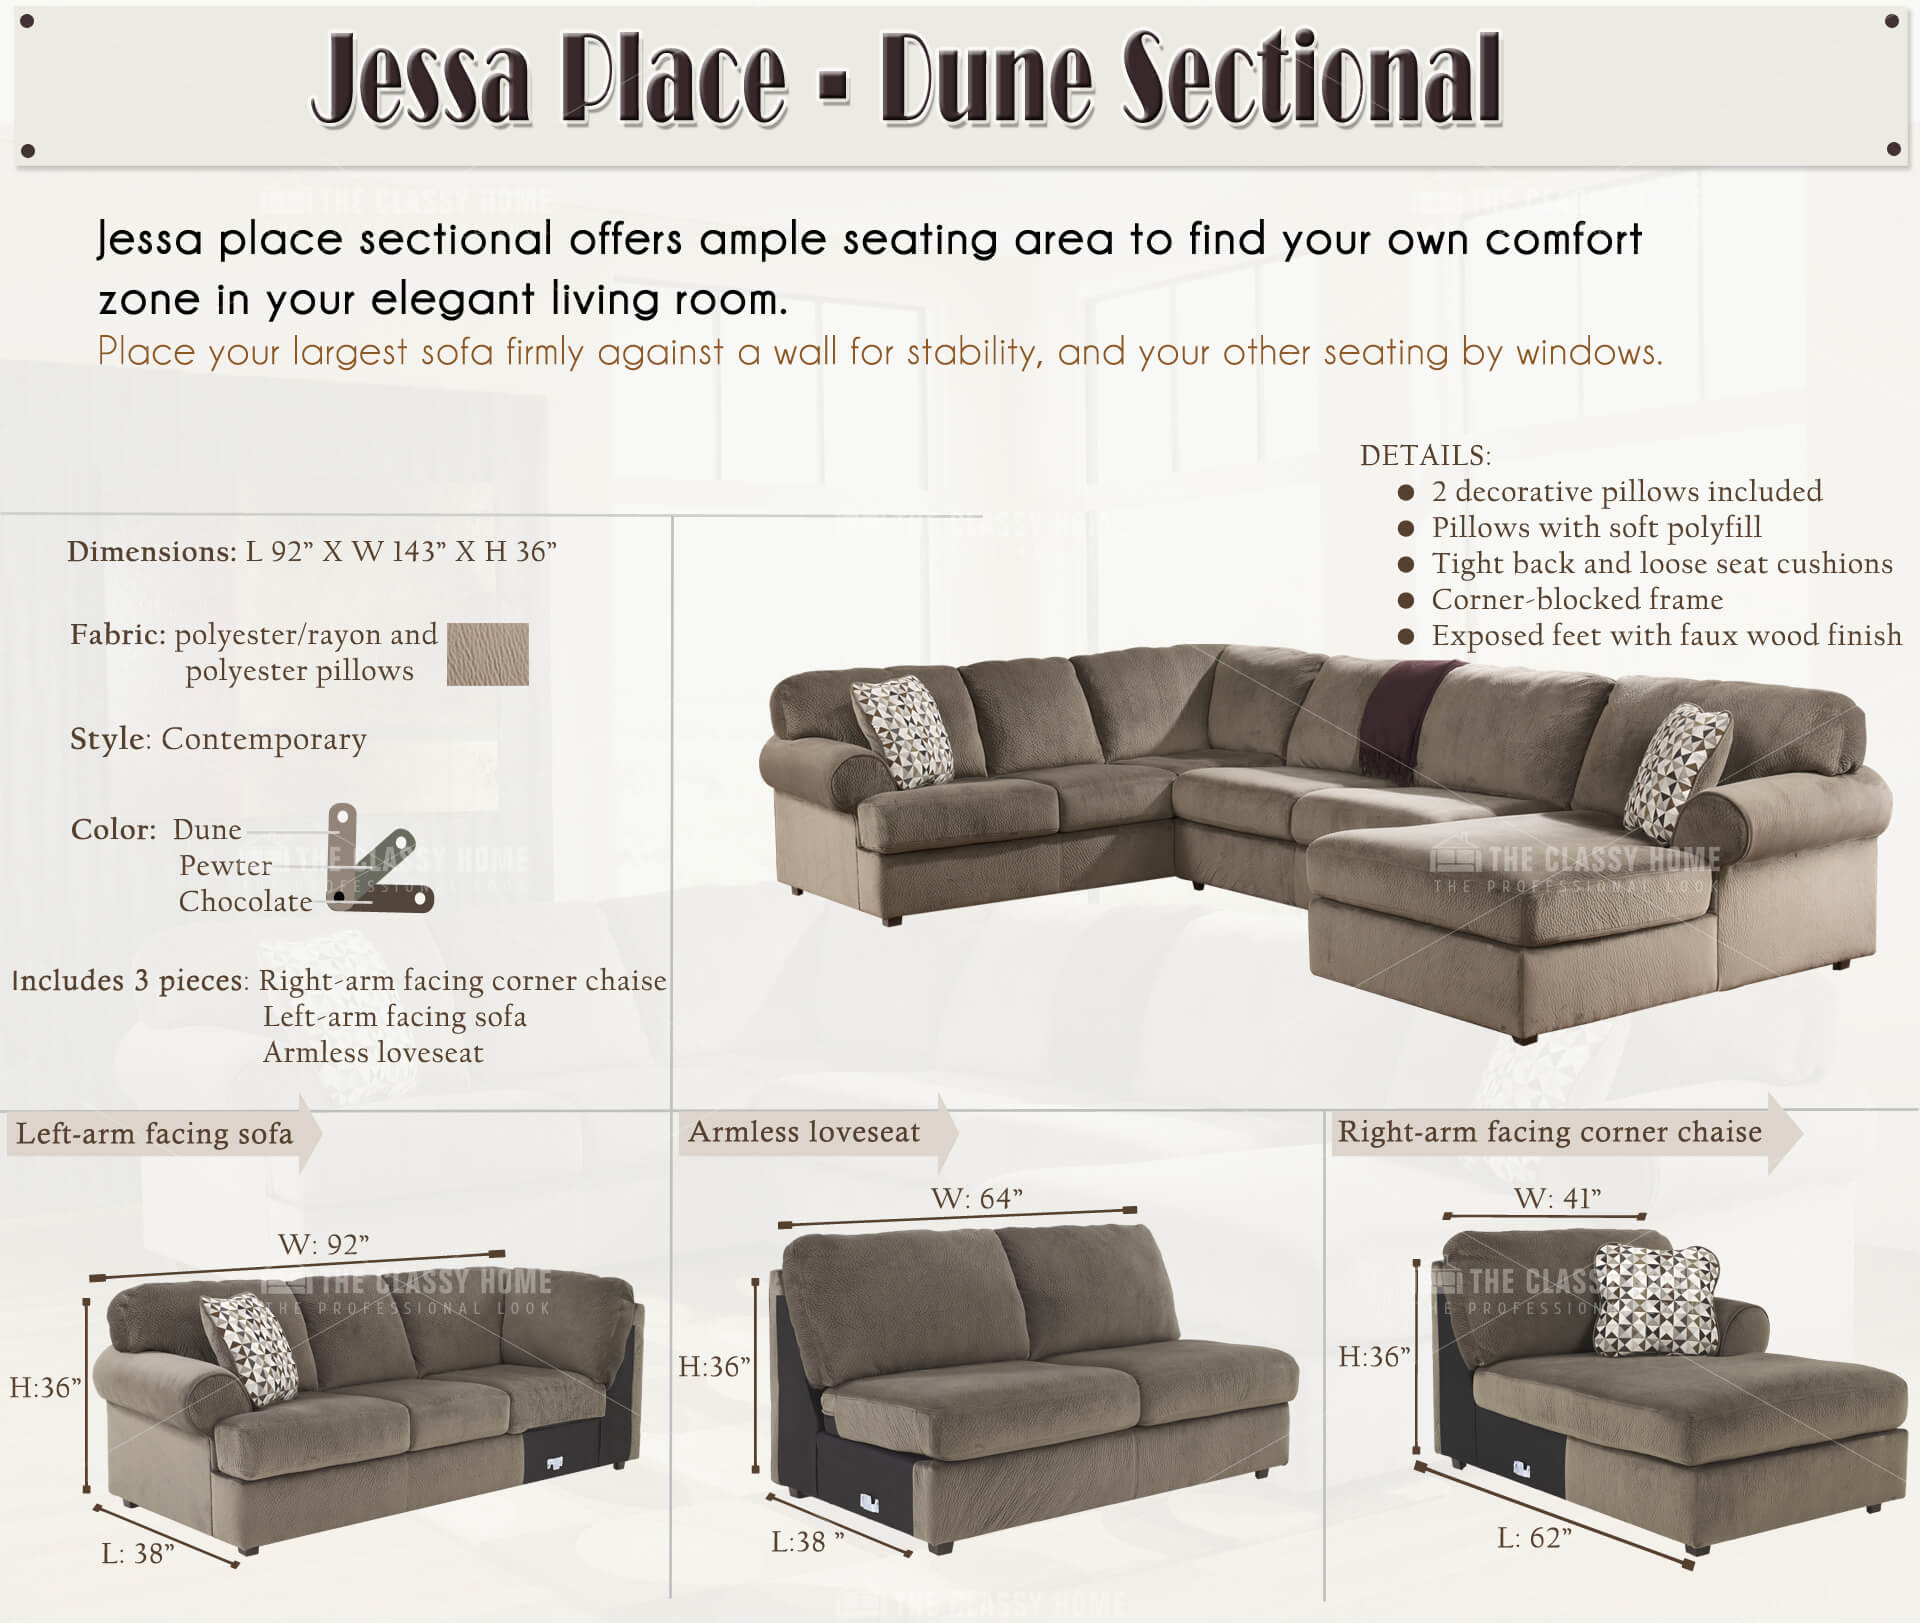 pantego sectional fascinating by sofas raf size with image design chaise place piece sofa dune jessa for furnitureusa of klaussner full